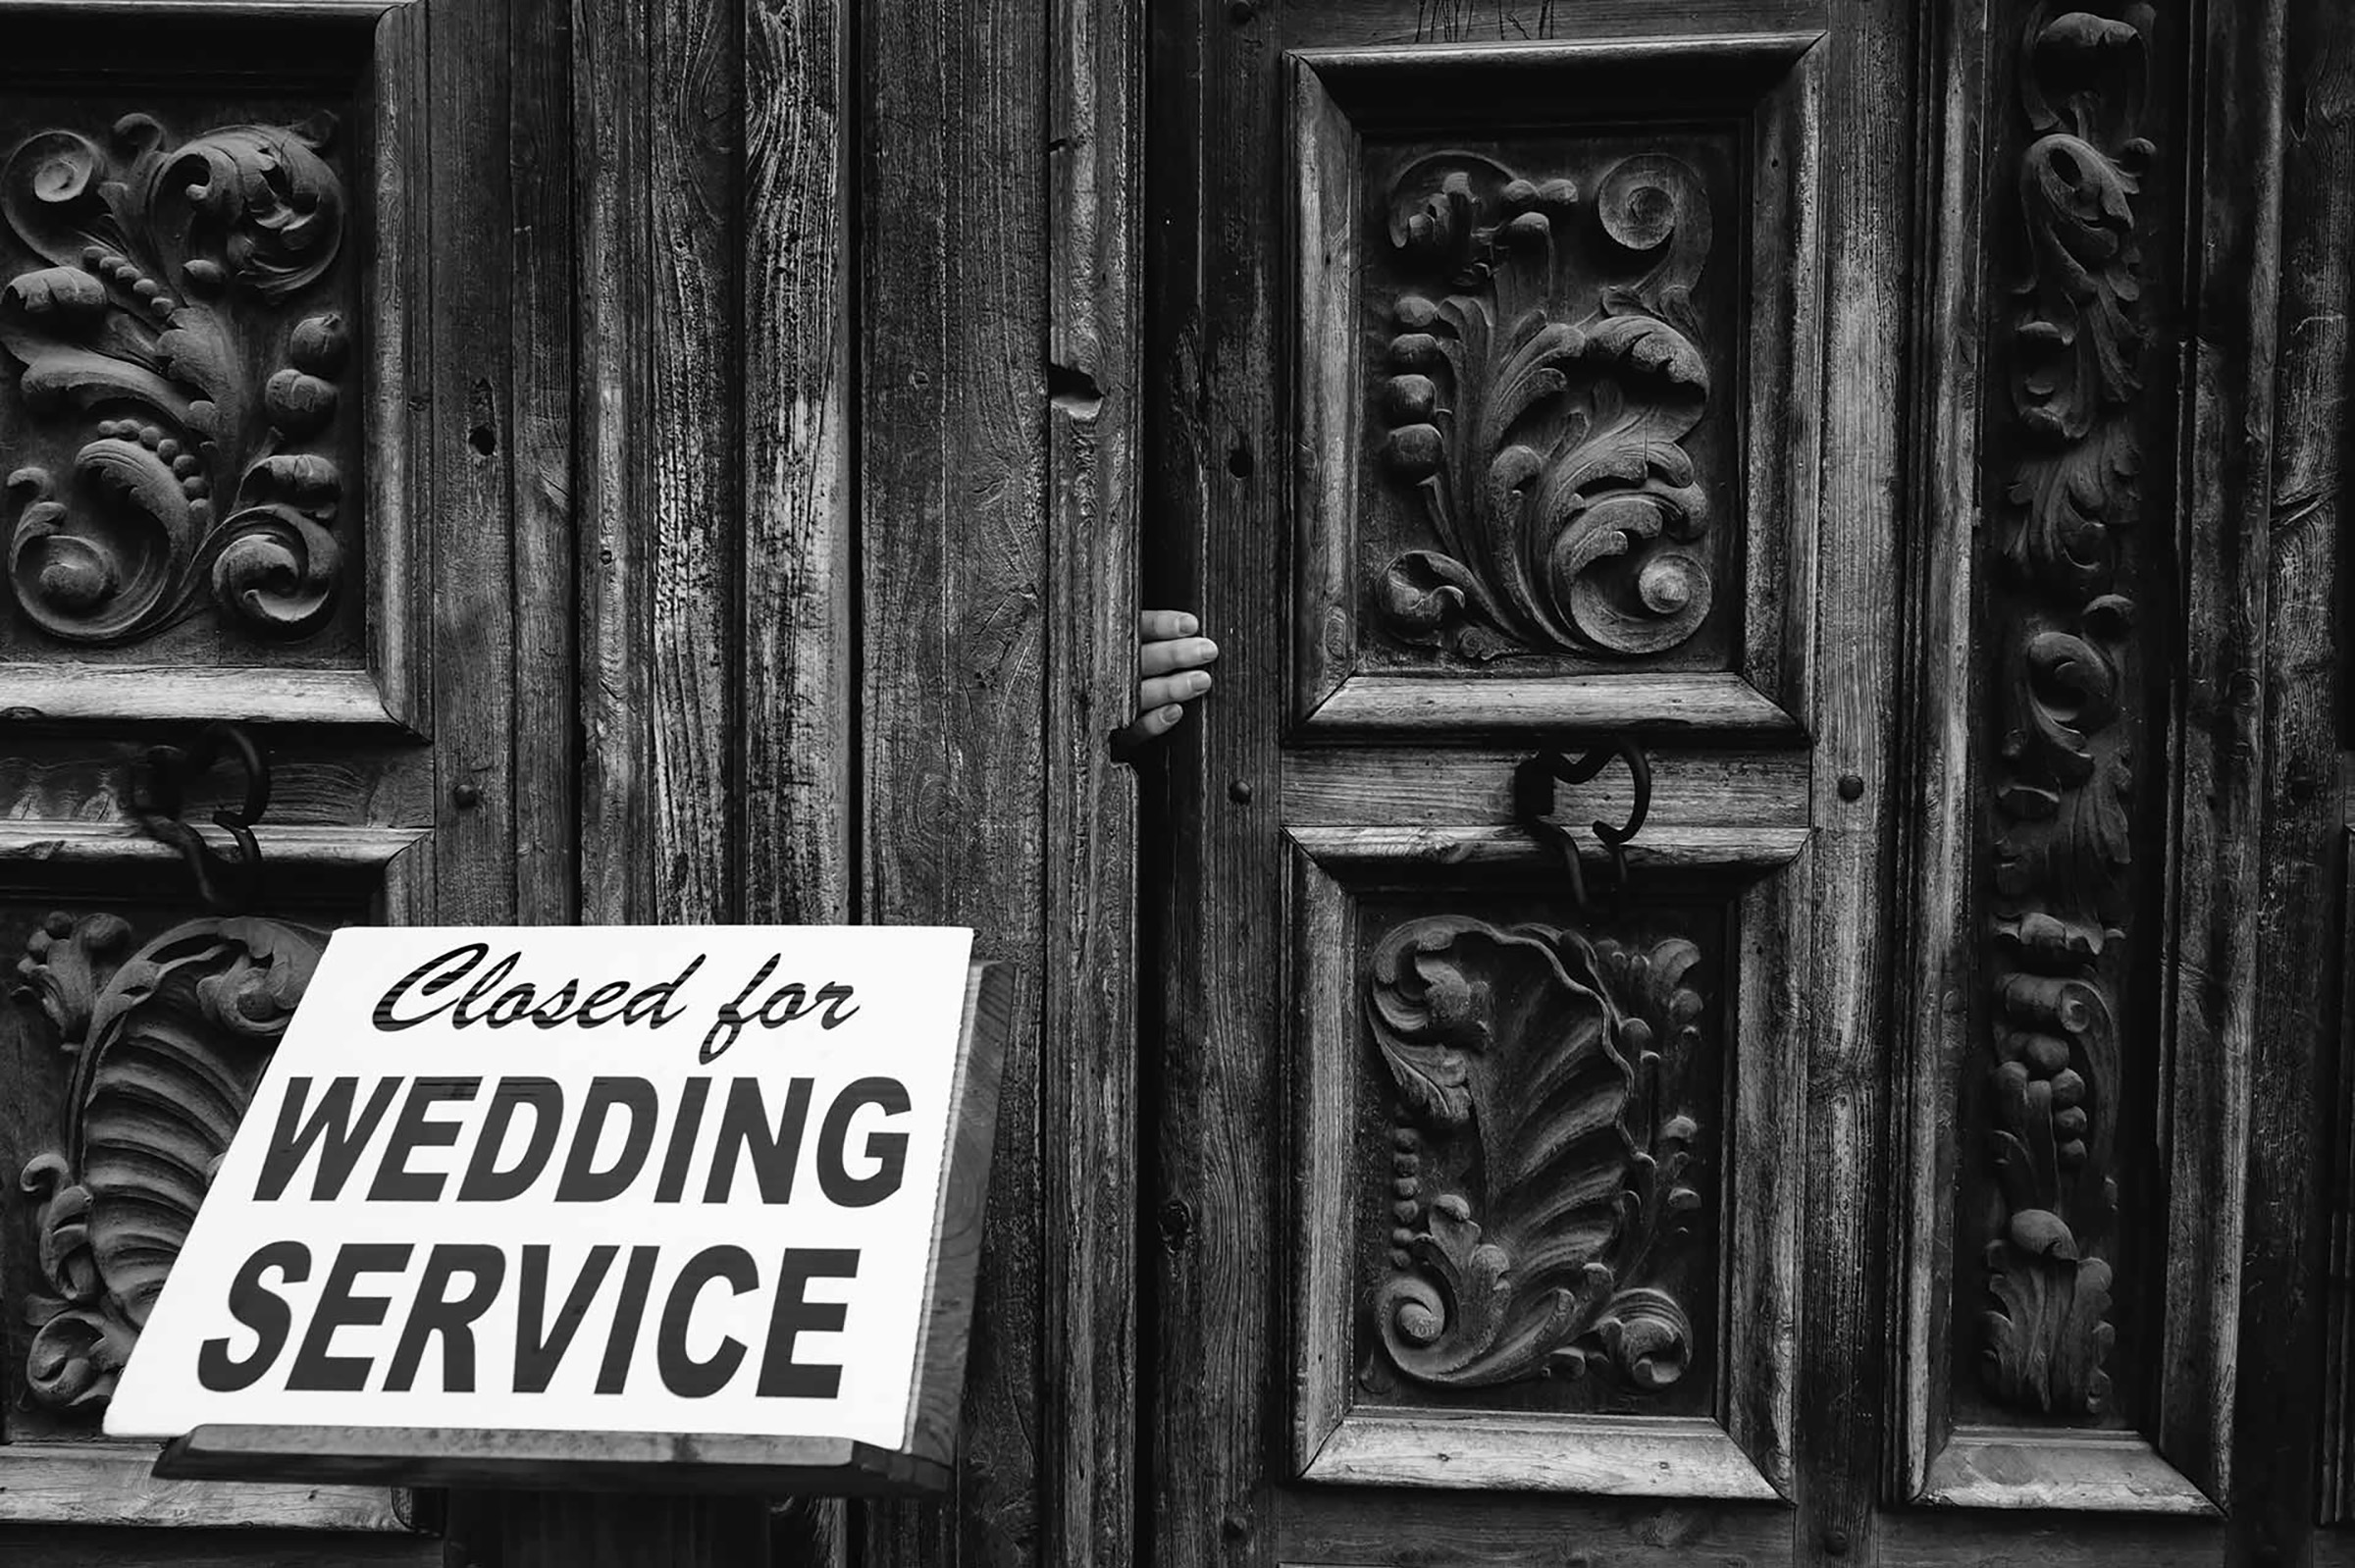 Hand in door with Closed for Wedding Service sign - photo by Philip Thomas Photography